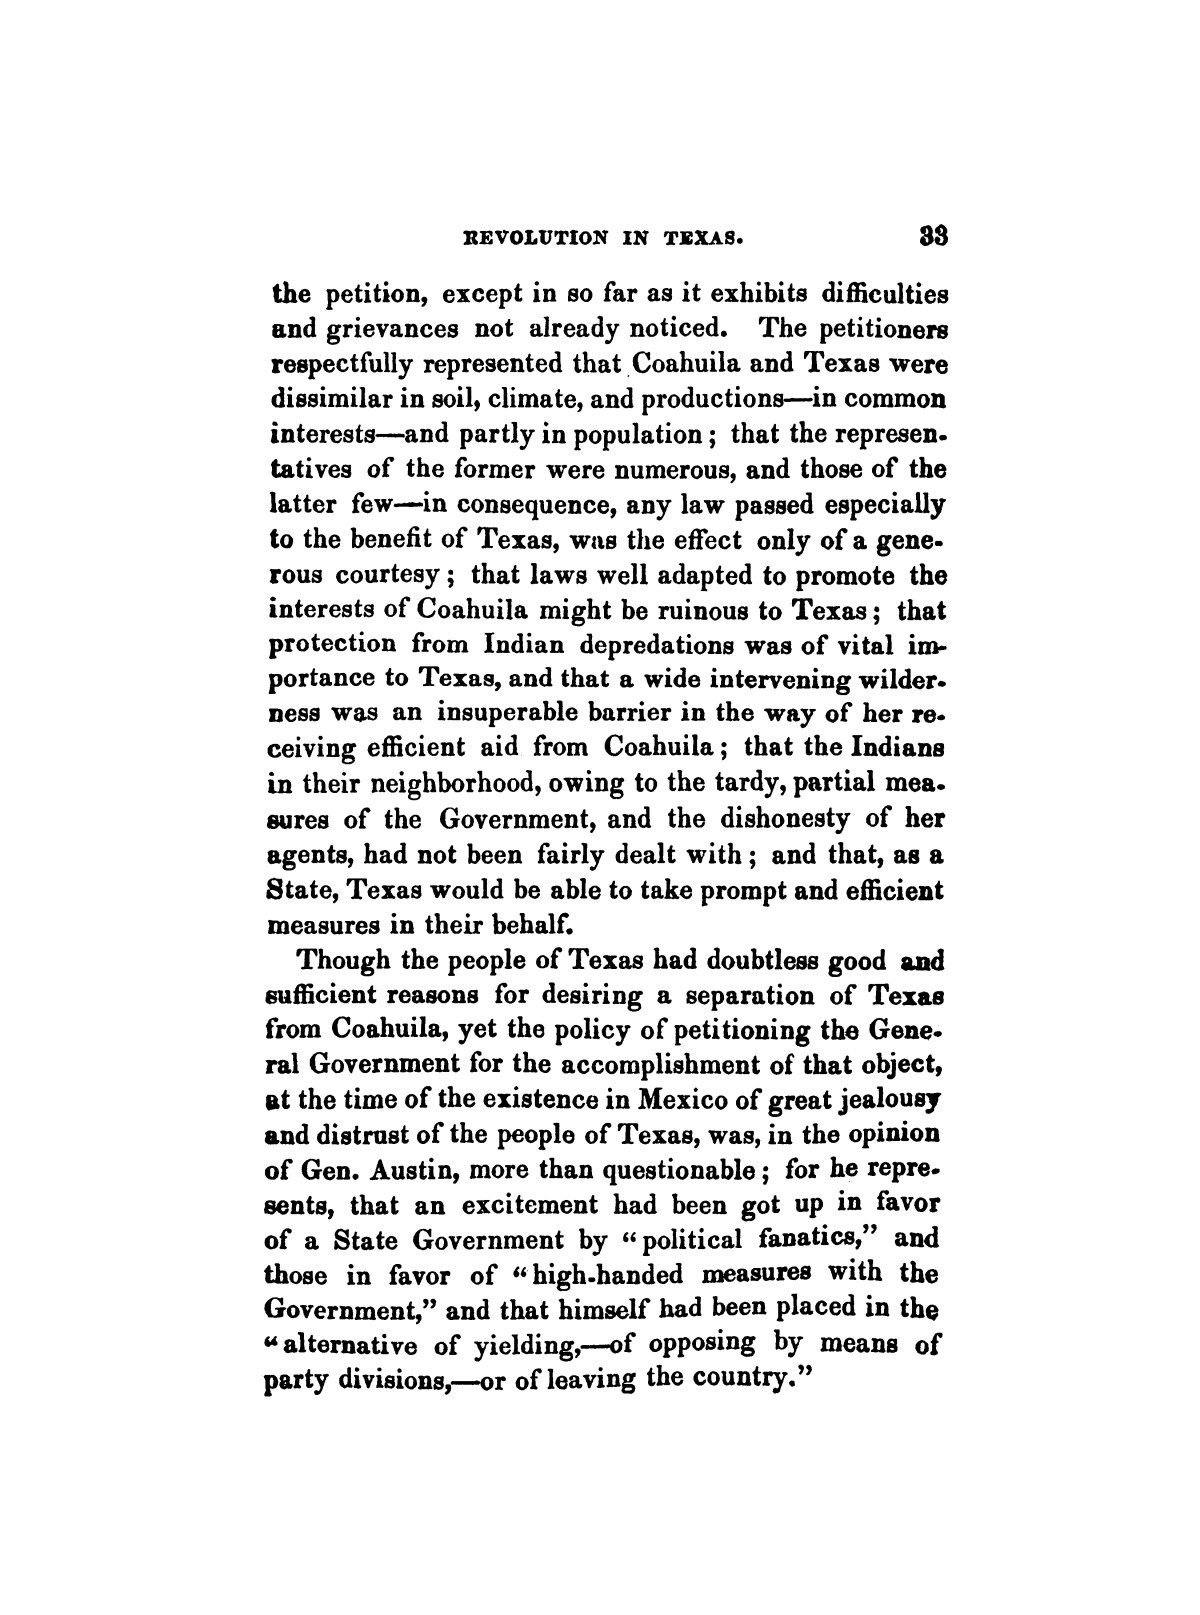 History of the revolution in Texas, particularly of the war of 1835 & '36; together with the latest geographical, topographical, and statistical accounts of the country, from the most authentic sources. Also, an appendix. By the Rev. C. Newell.                                                                                                      [Sequence #]: 45 of 227